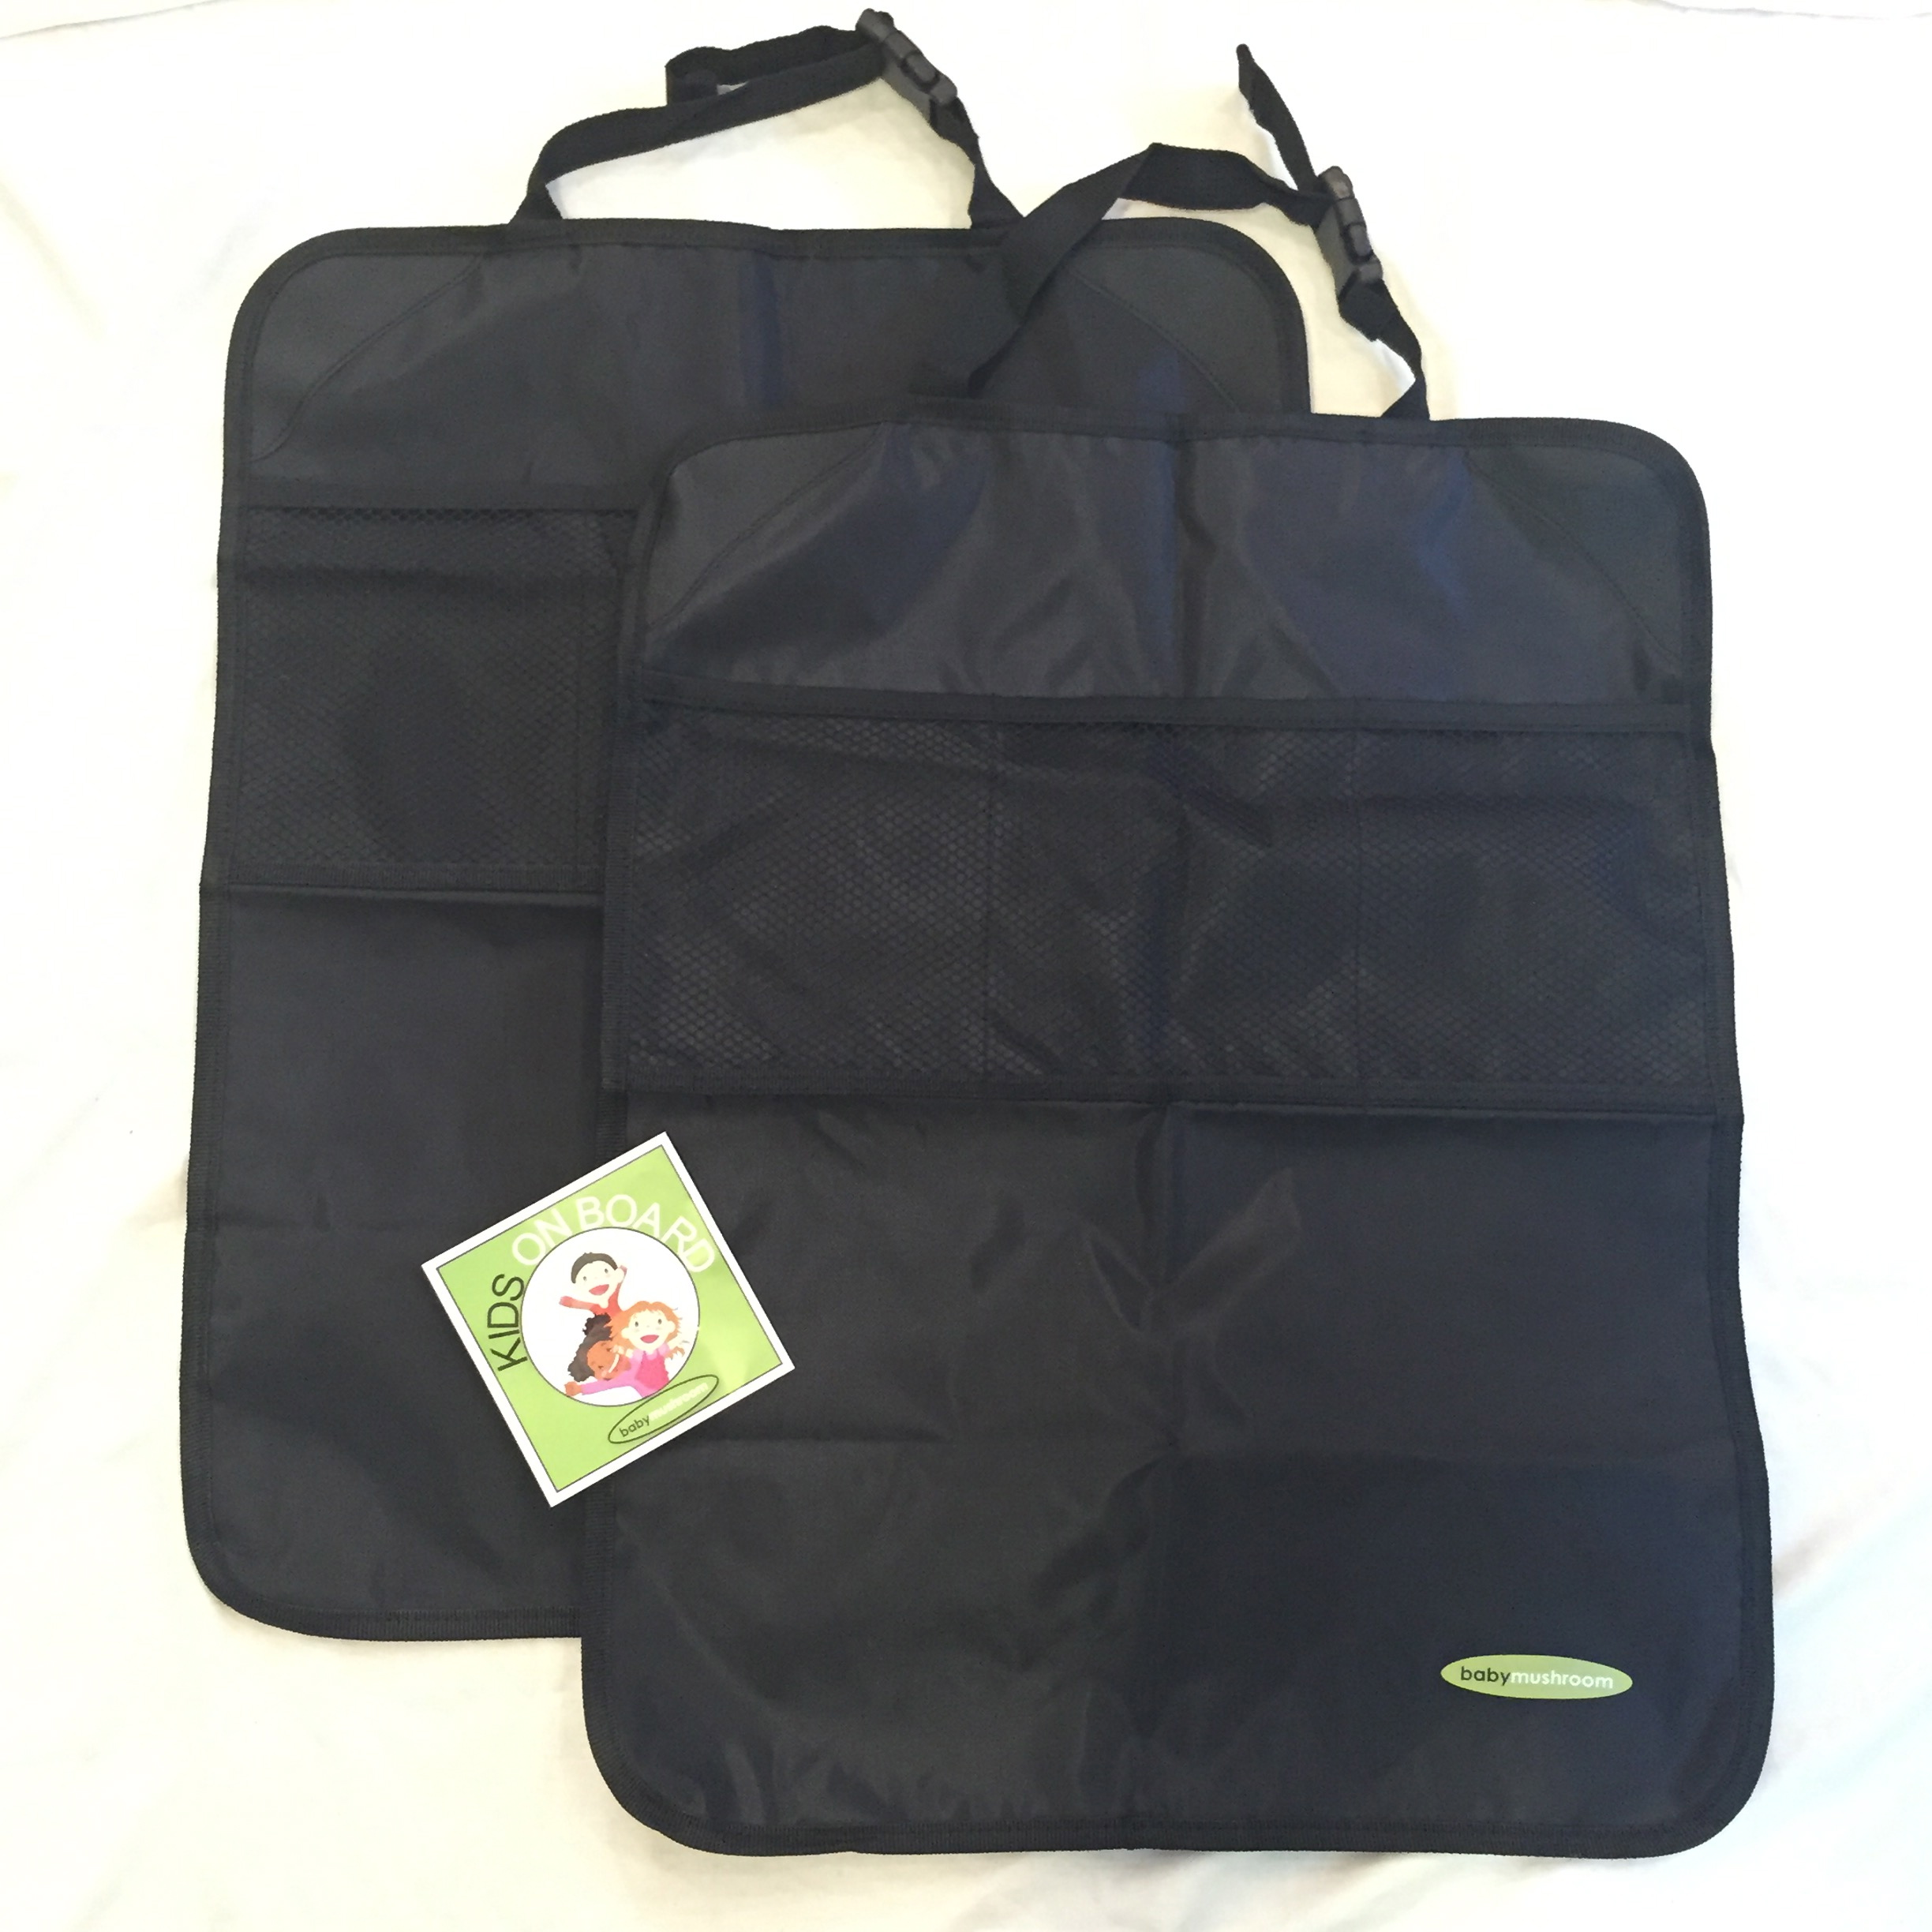 Premium Kick Mats by Baby Mushroom (2 Pack) - Superior Quality Waterproof Car Seat Back Protectors w/ Storage and Reinforced Corners. Bonus Kids on Board Decal! Protects Upholstery, Fabric & Leather.